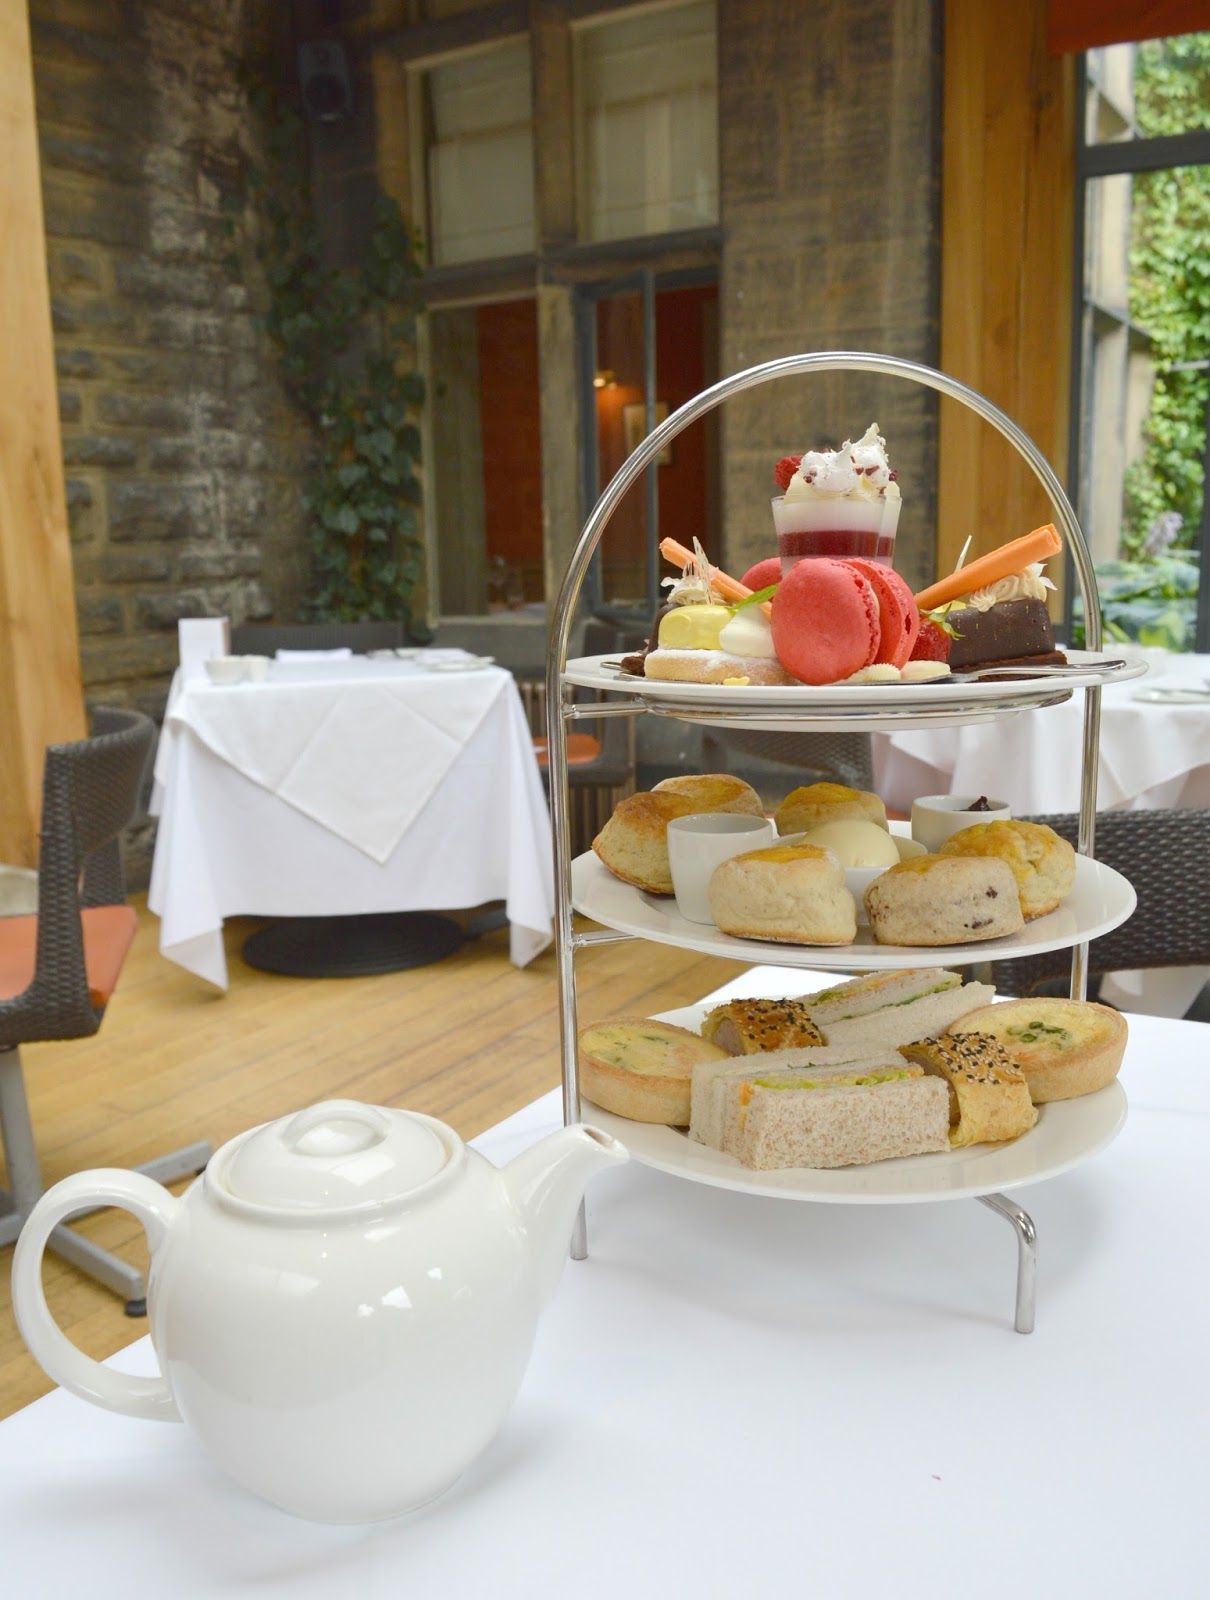 10 Reasons Why I LOVE Afternoon Tea - Jesmond Dene House